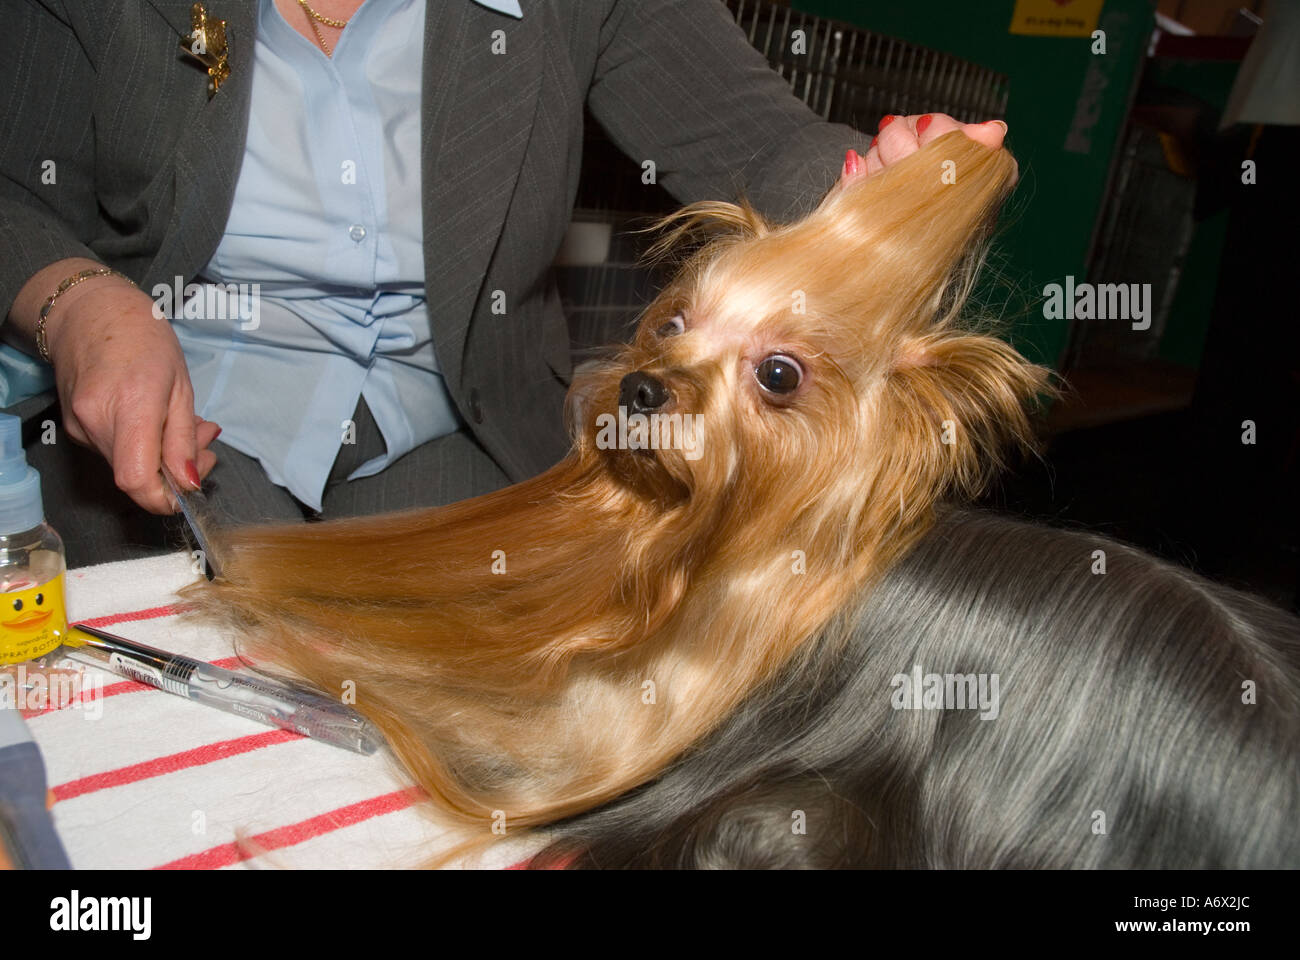 A Yorkshire Terrier being groomed - Stock Image